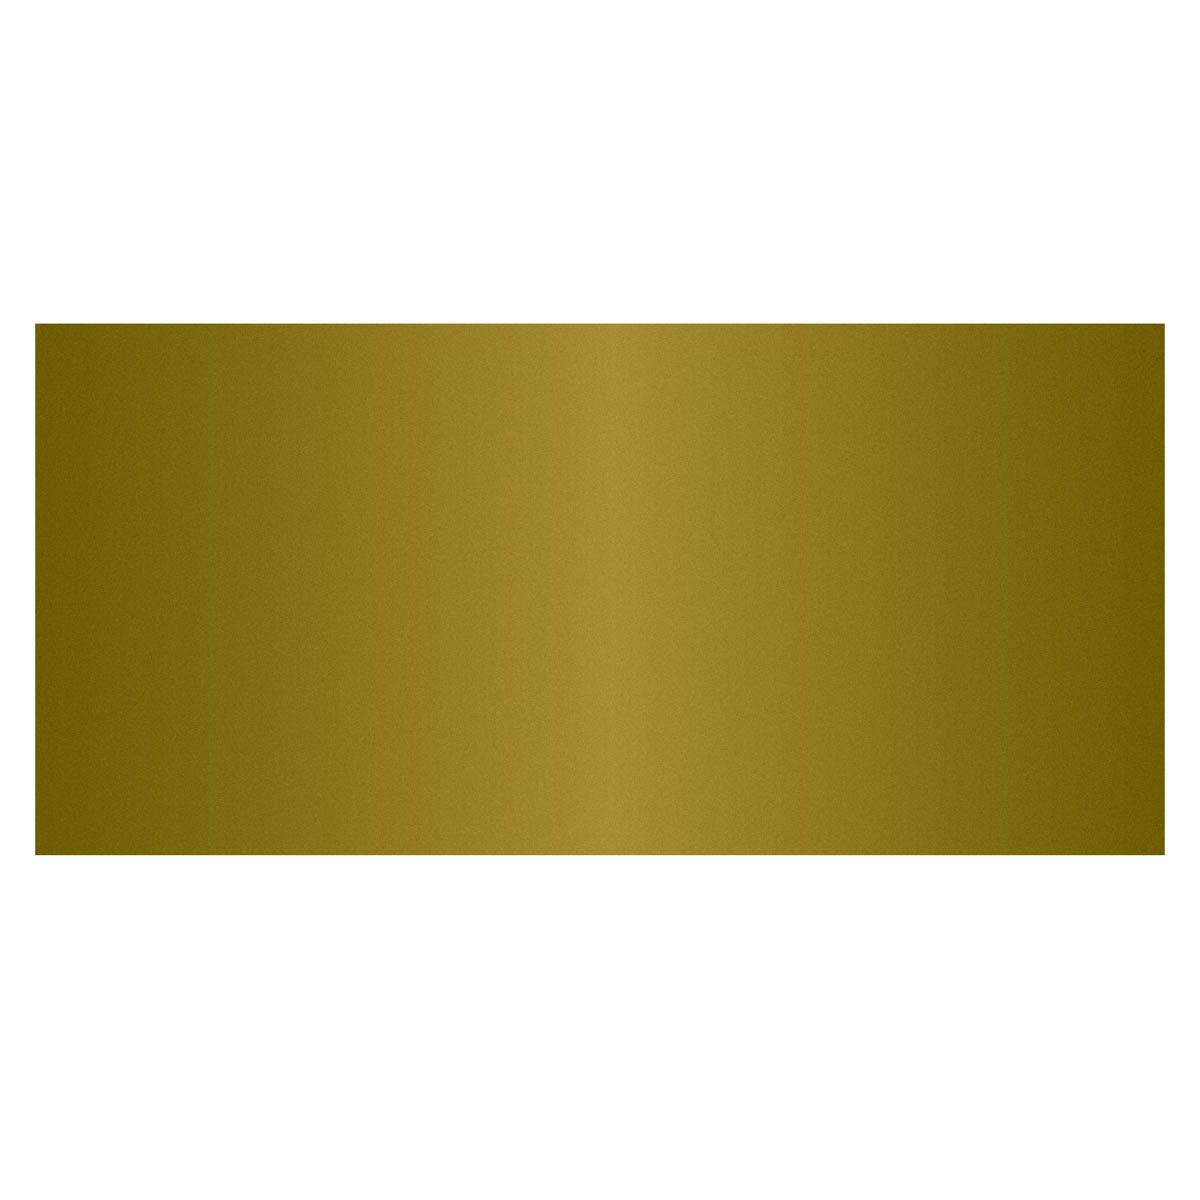 Waverly ® Inspirations Metallic Multi-Surface Acrylic Paint - Golden, 2 oz.